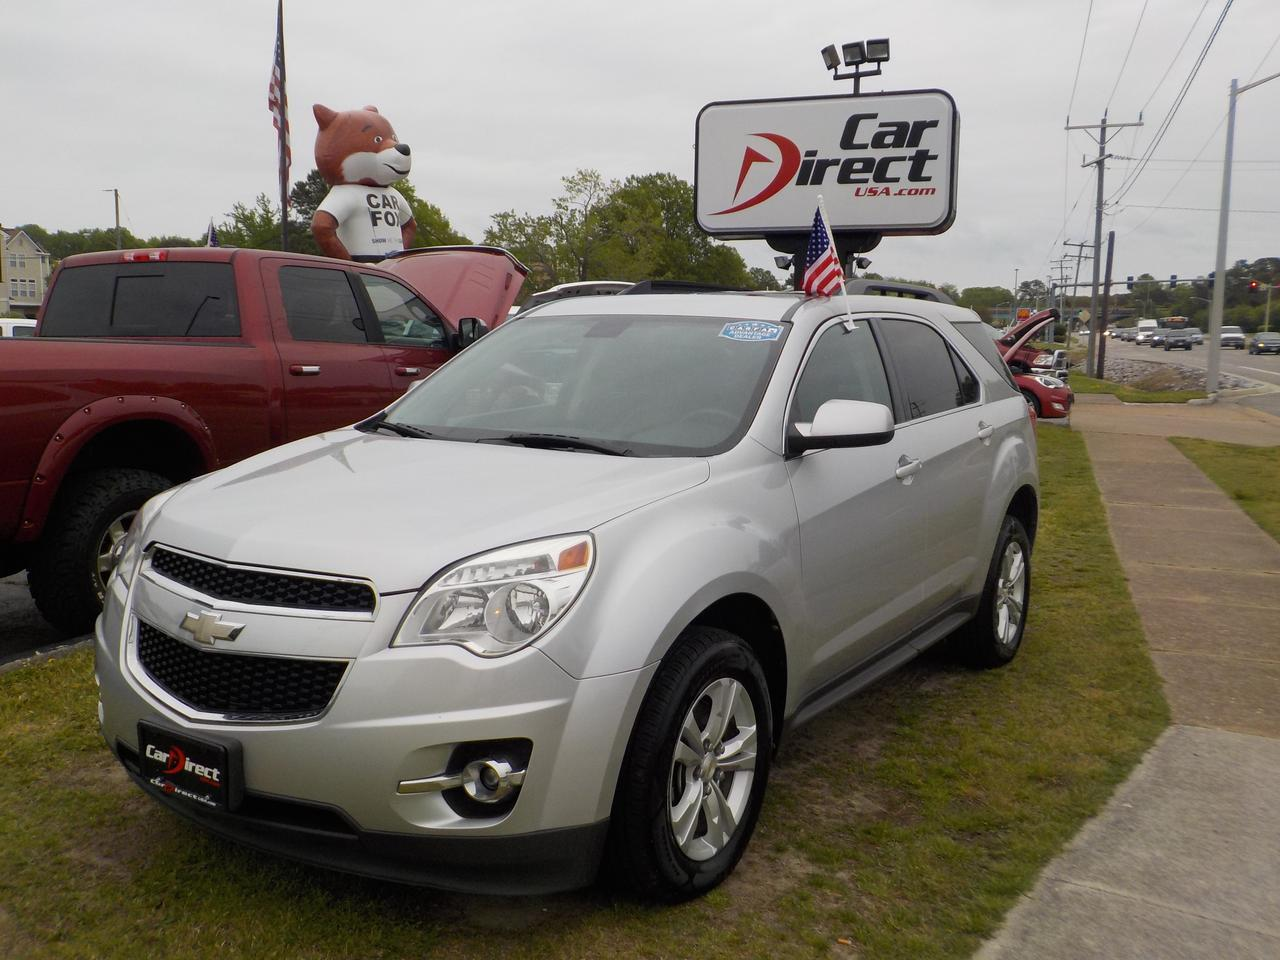 2010 CHEVROLET EQUINOX LT2 FWD, BACKUP CAMERA, BLUETOOTH, ONSTAR, REMOTE START, SUNROOF, ROOF RACKS, LEATHER, HEATED SEATS!